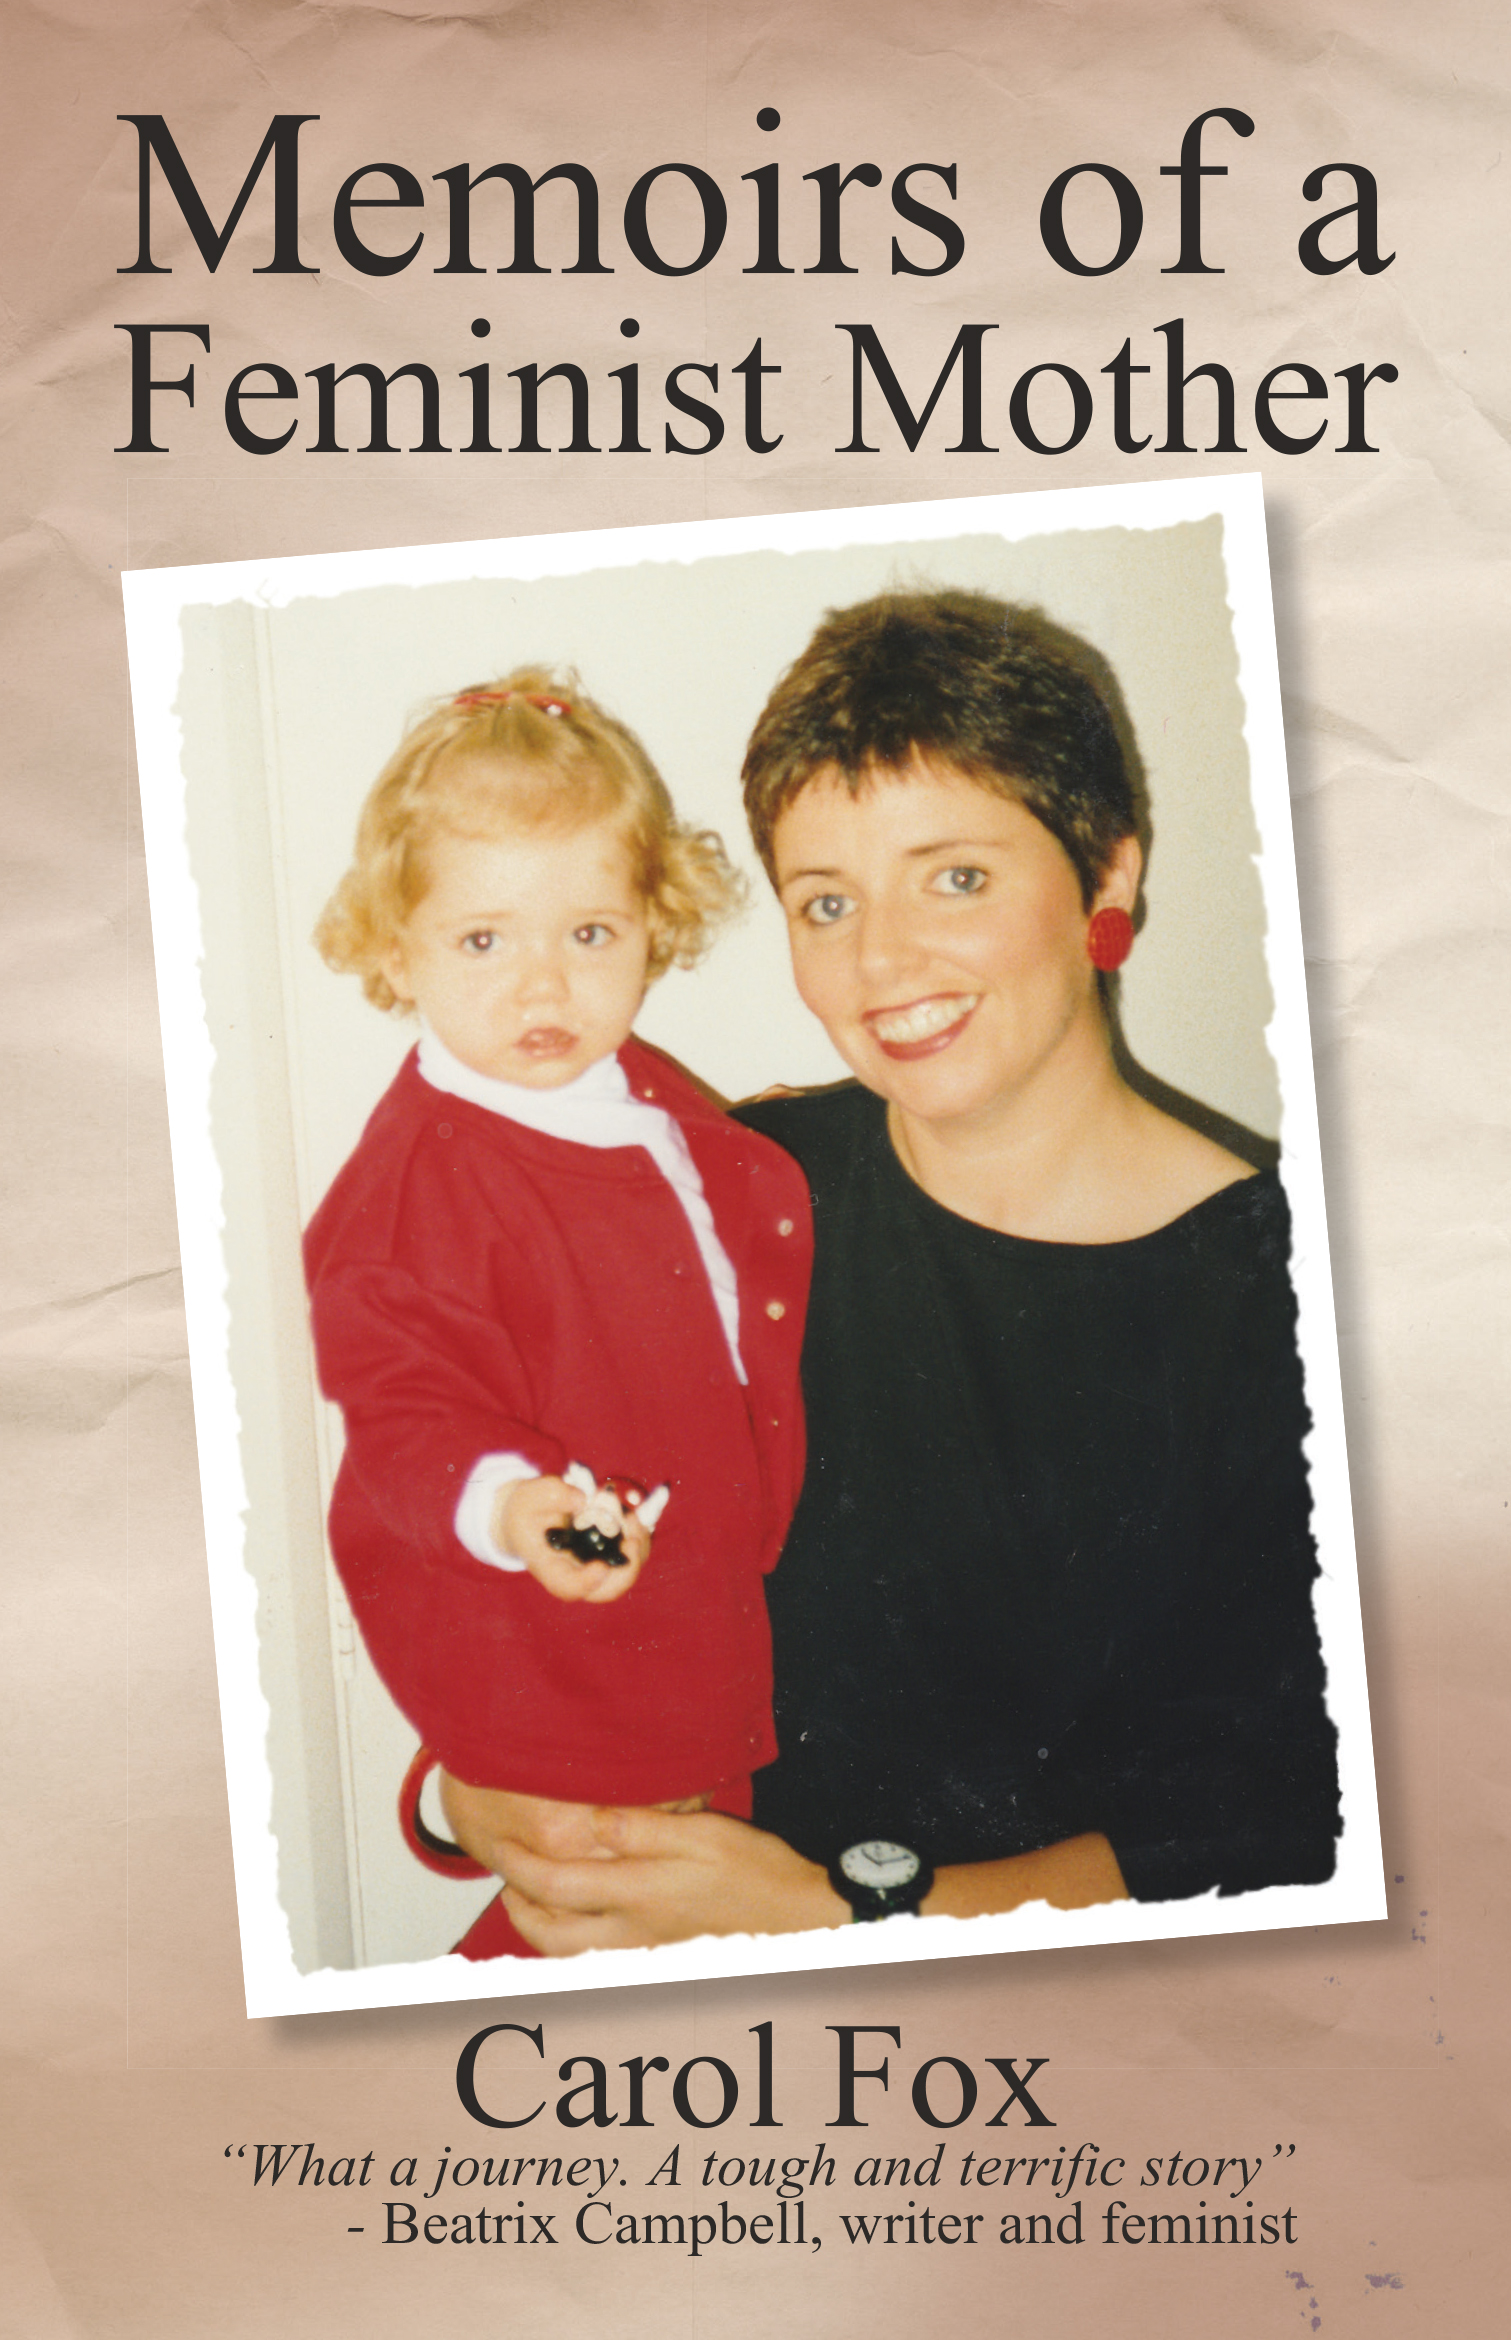 Memoirs of a Feminist Mother, by Carol Fox